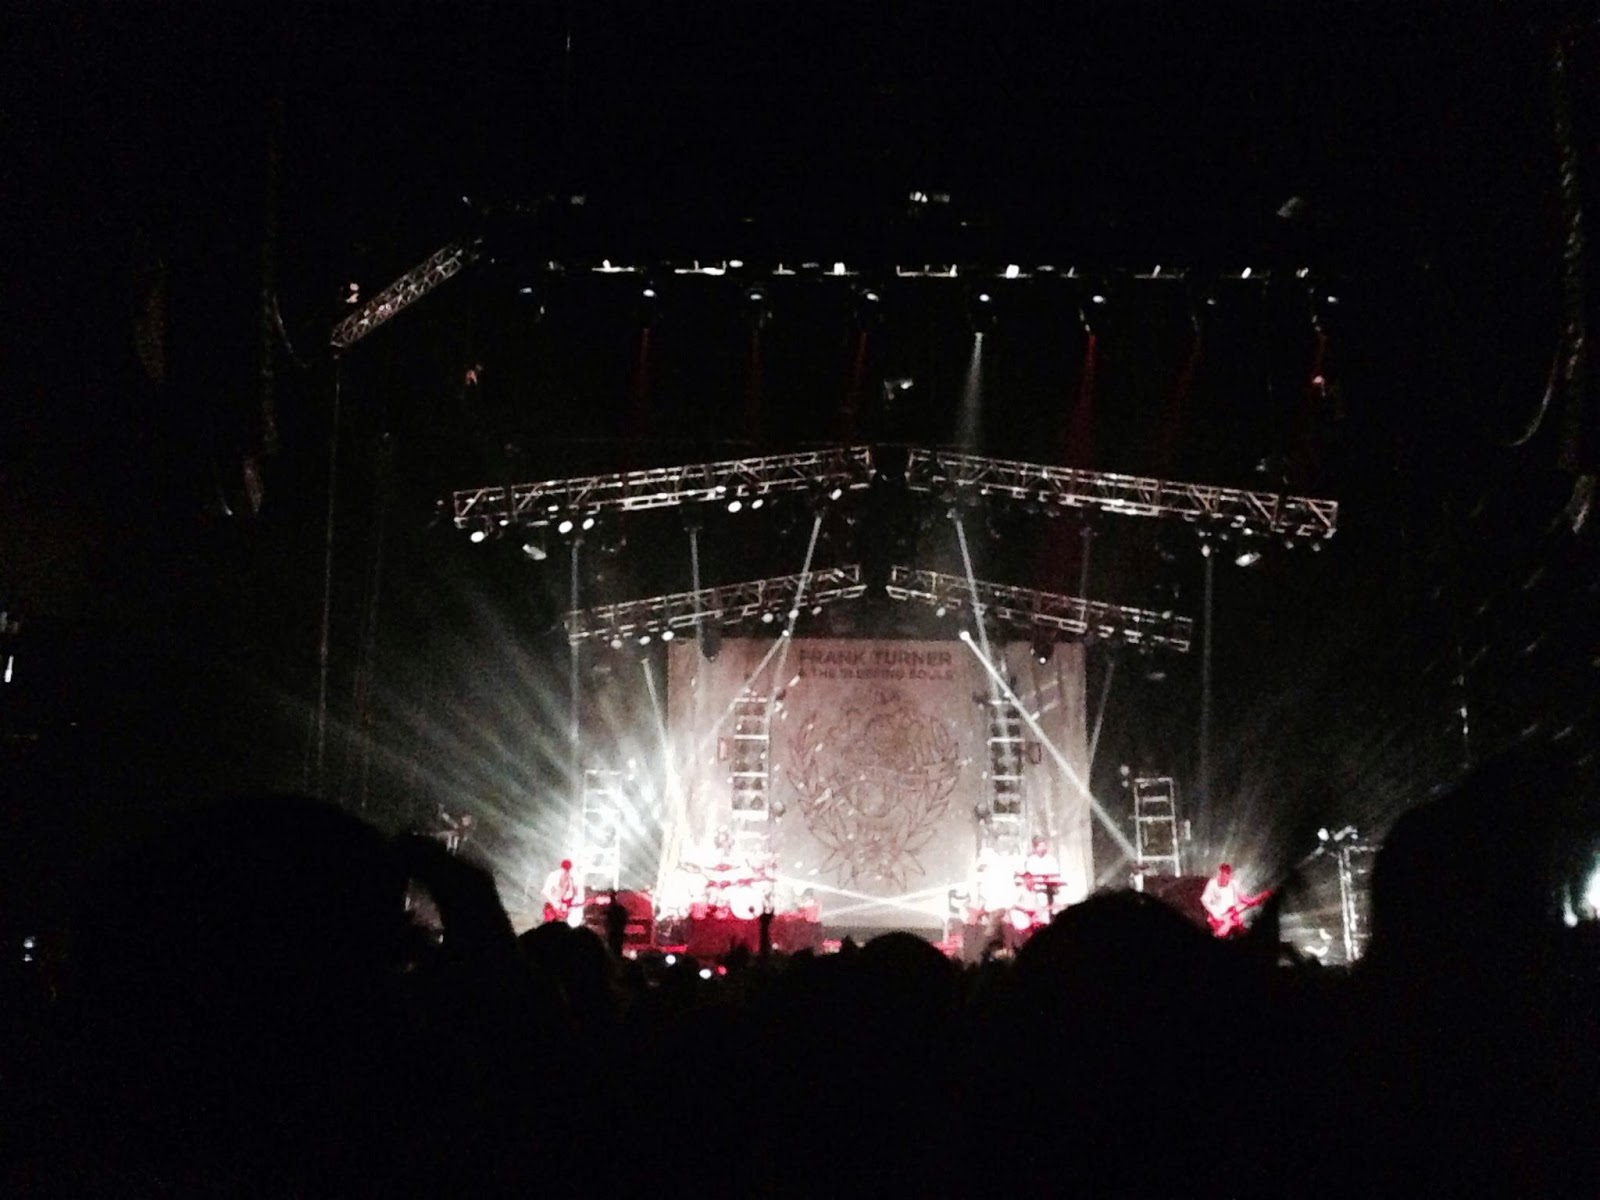 Frank Turner at the O2 Arena, London